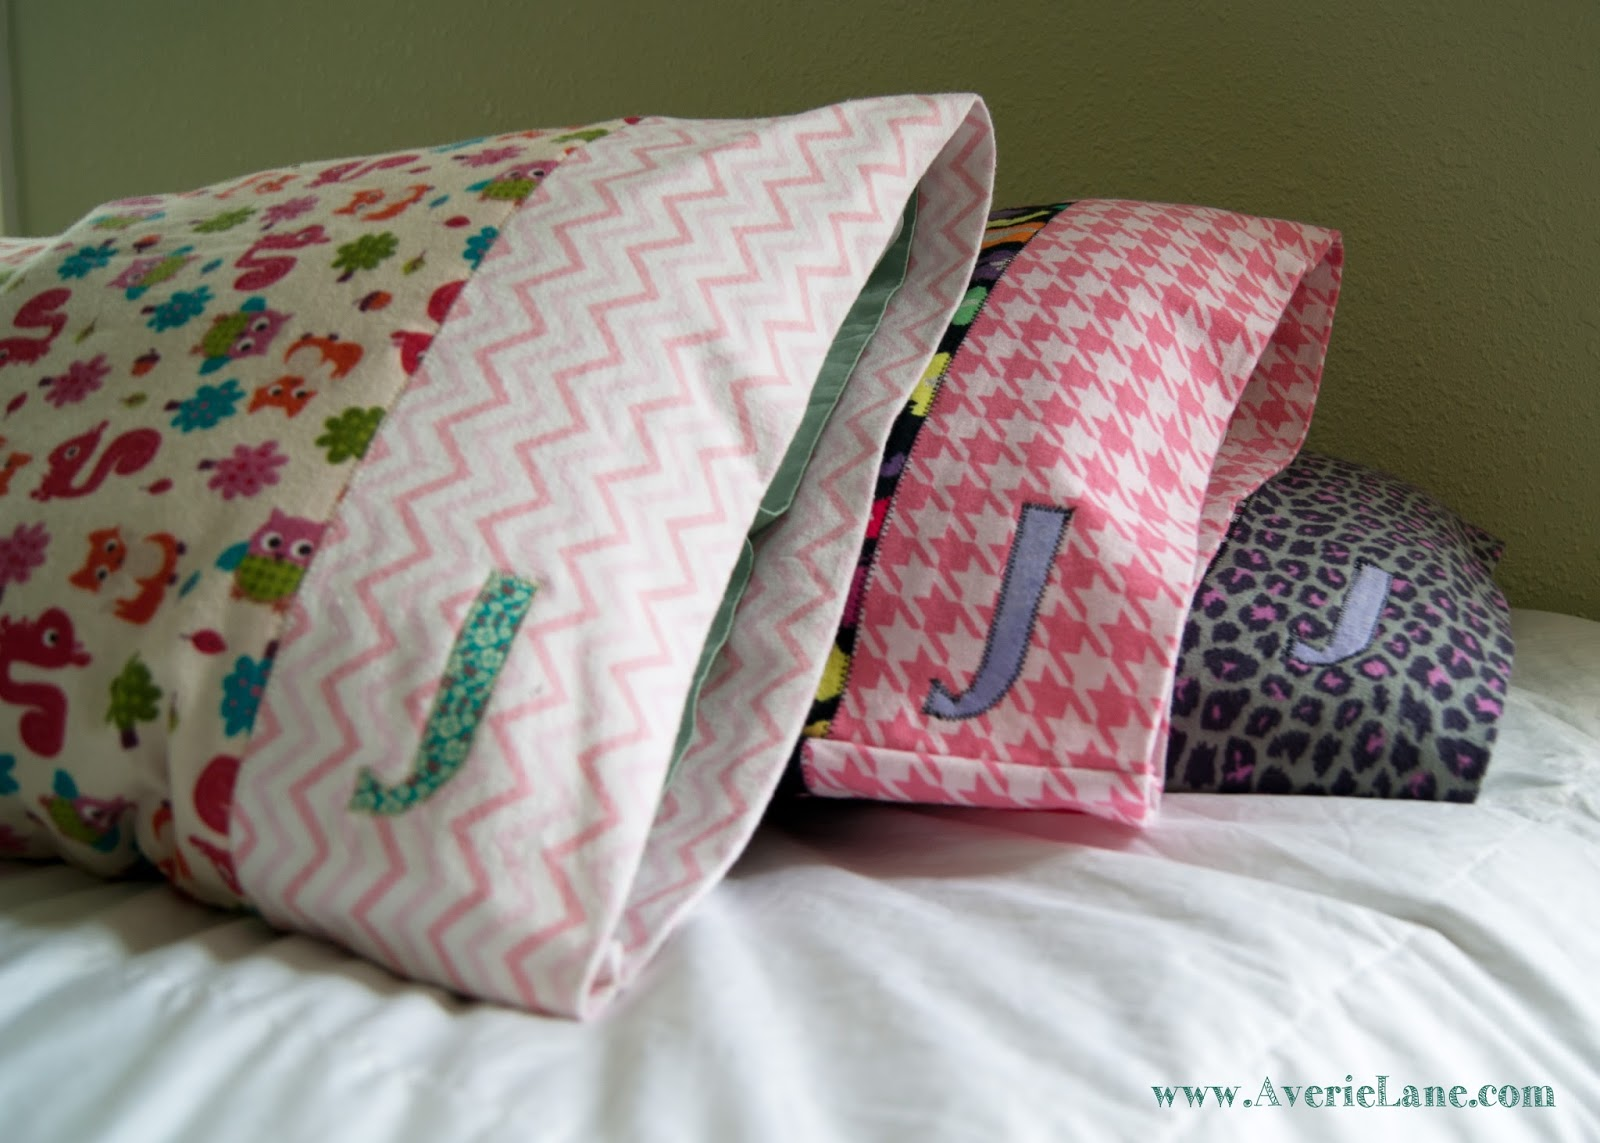 Sewing projects for kids #17 - Pillowcases